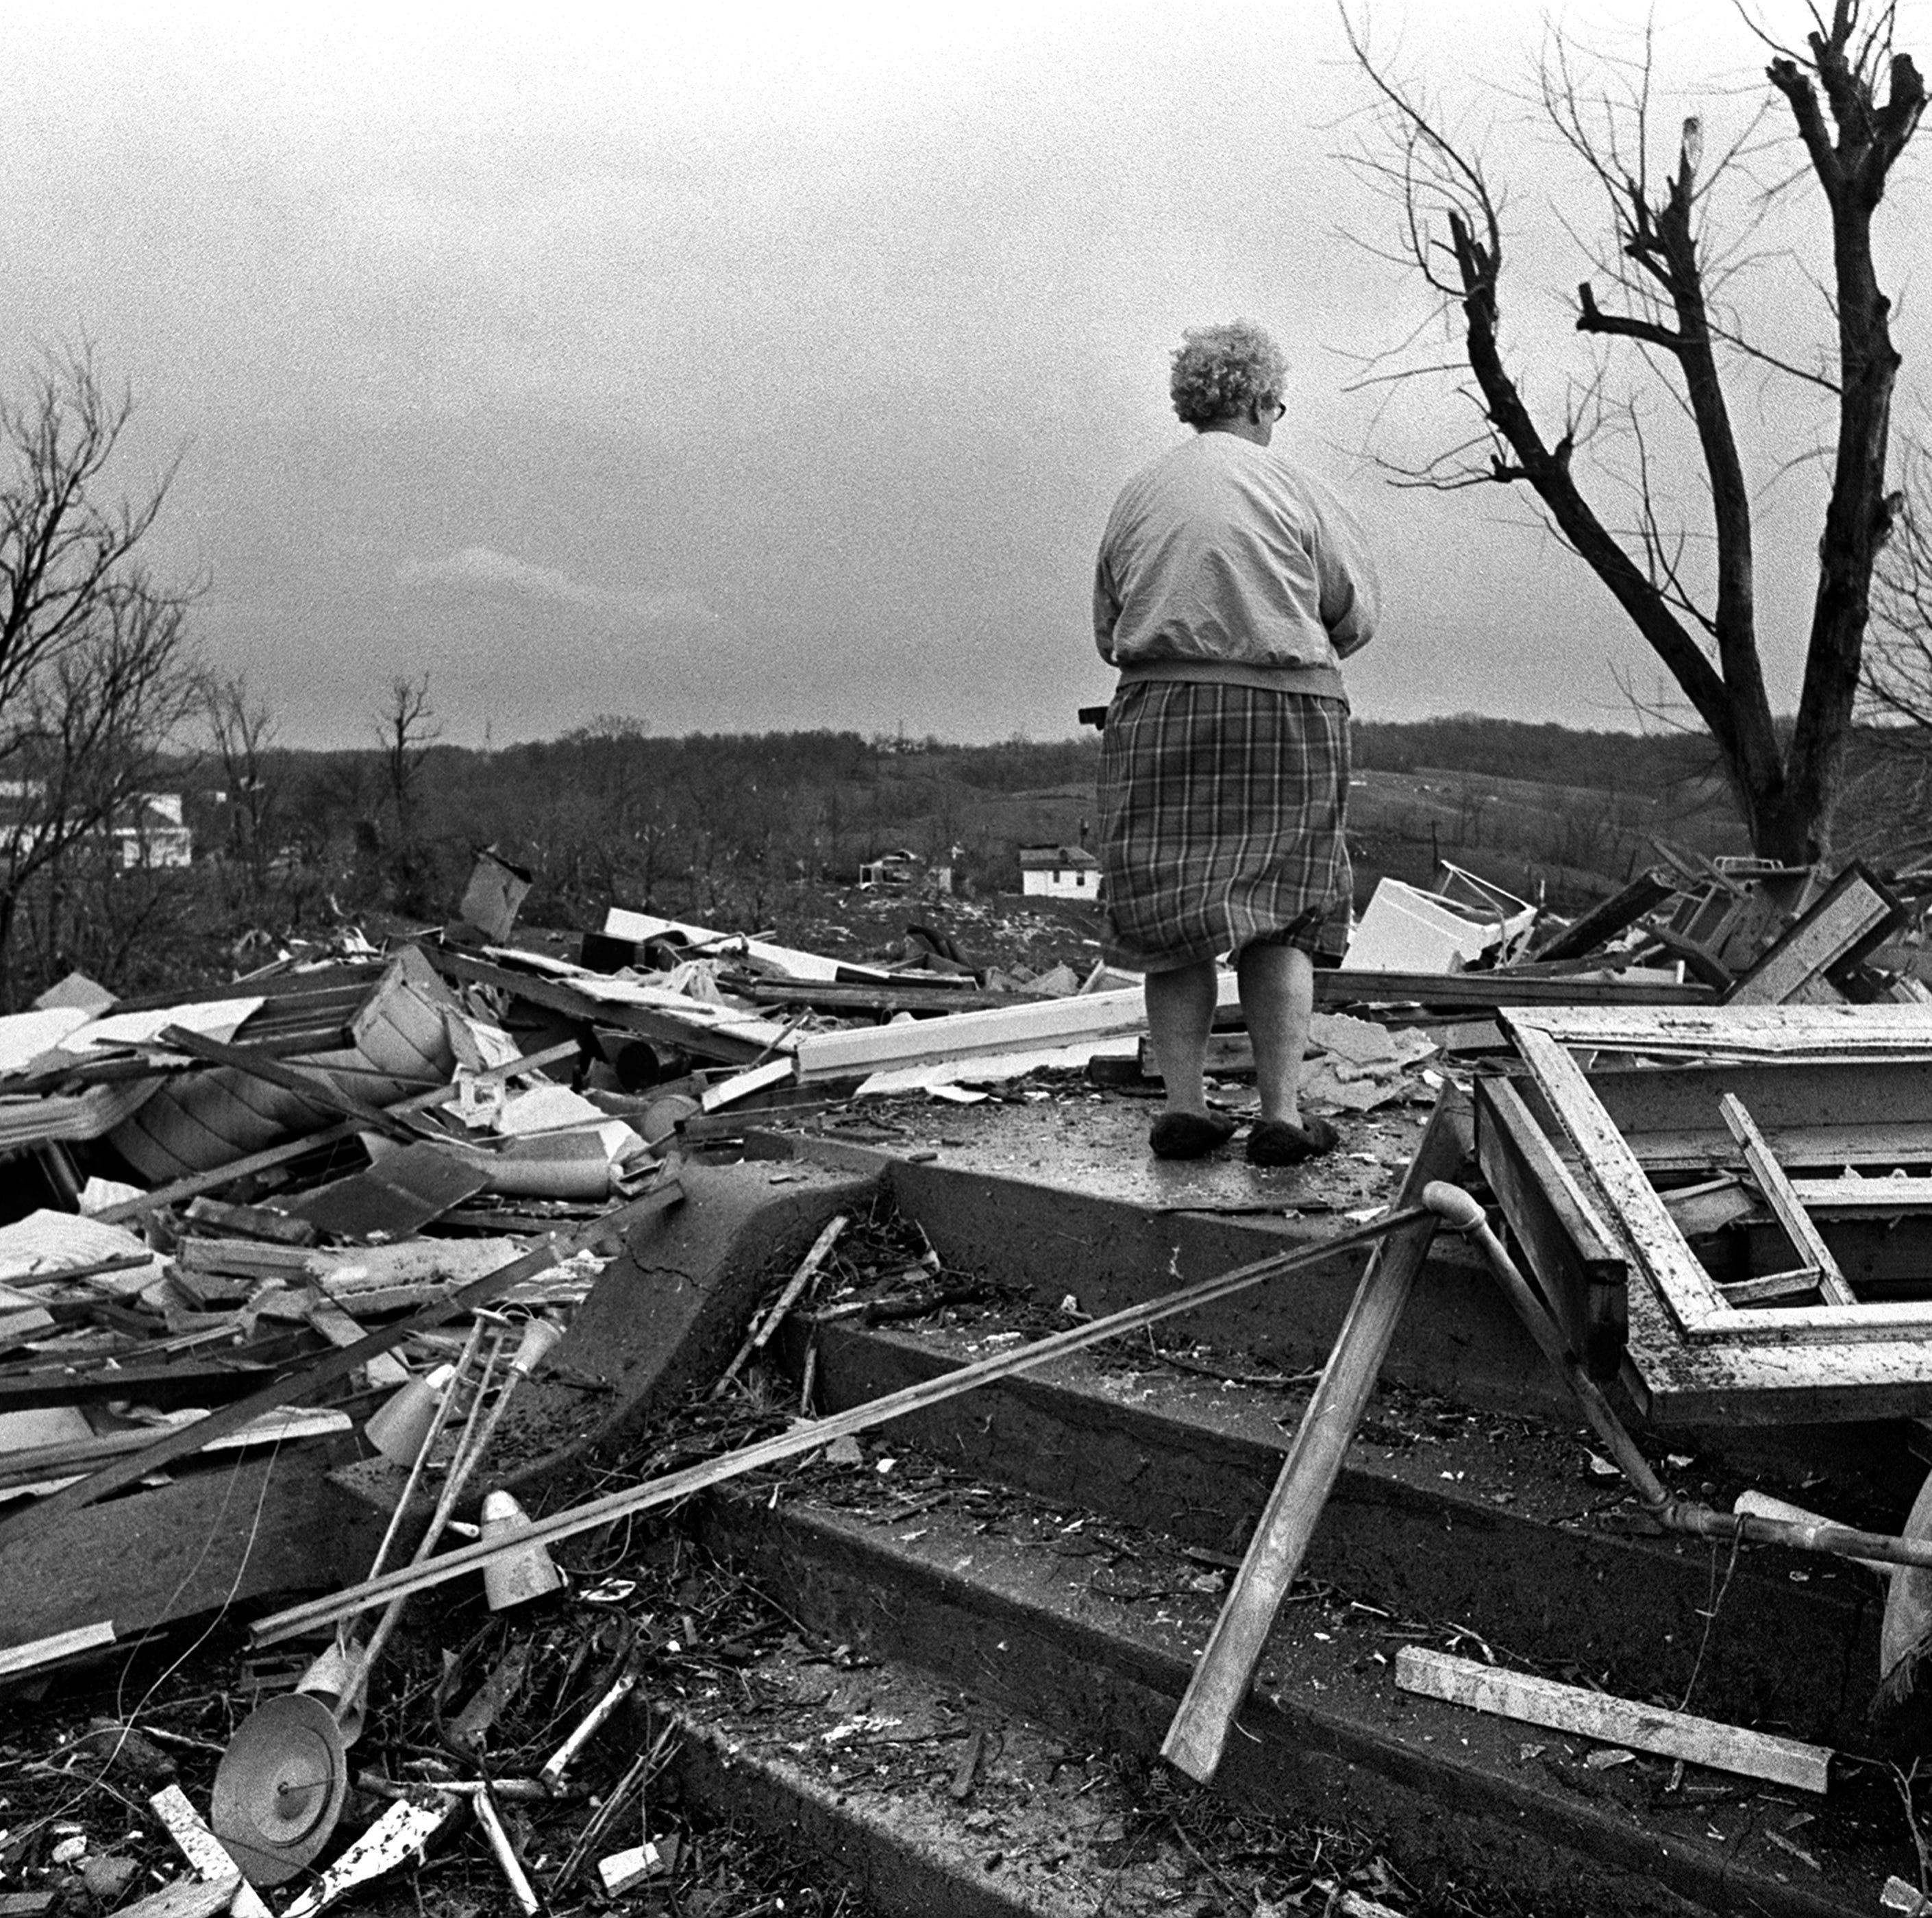 45 years ago, the deadly Super Outbreak of tornadoes devastated Kentucky